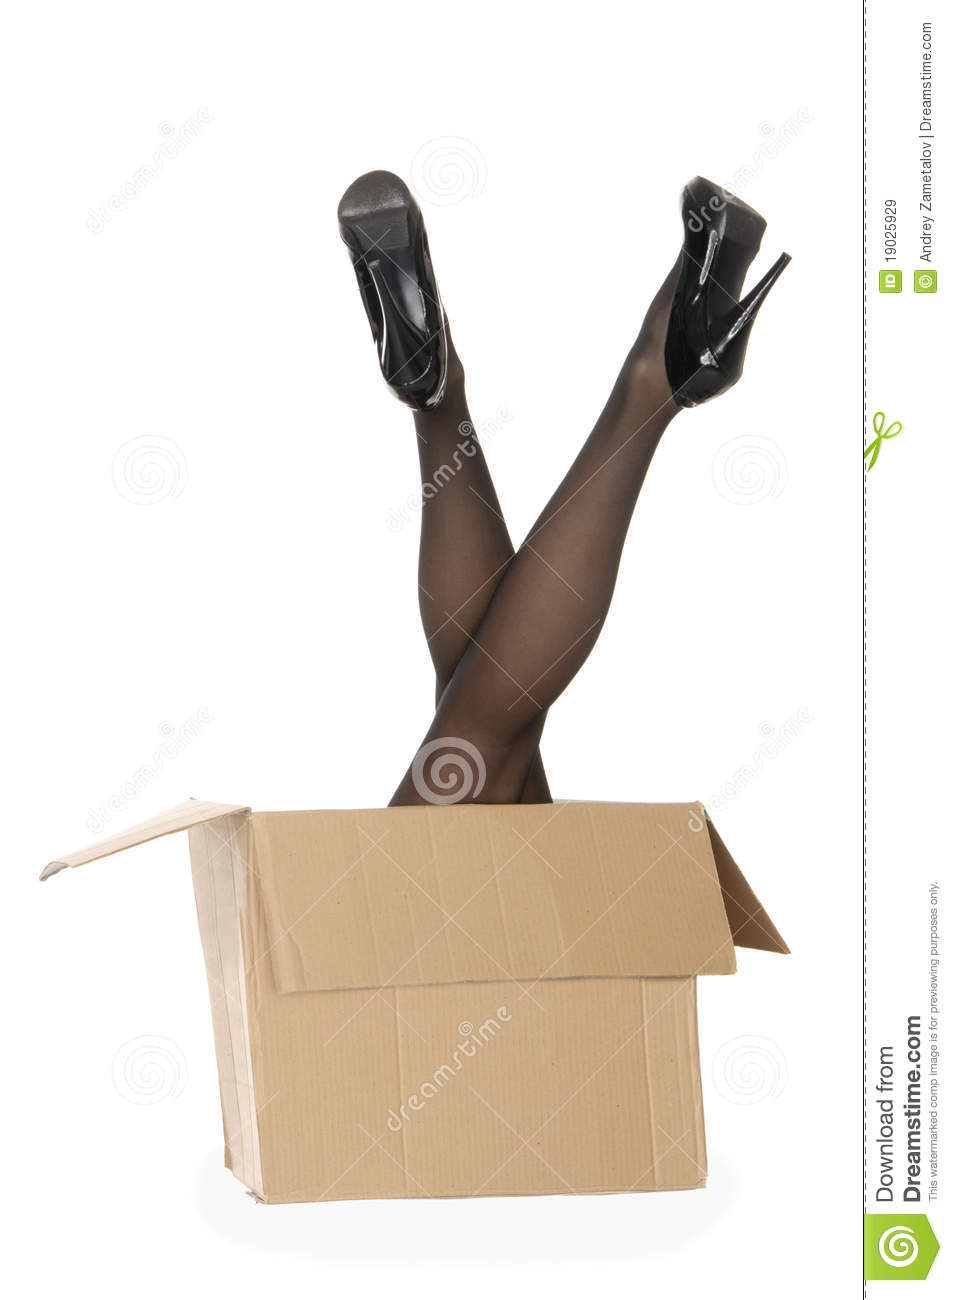 Women s legs sticking out of the box